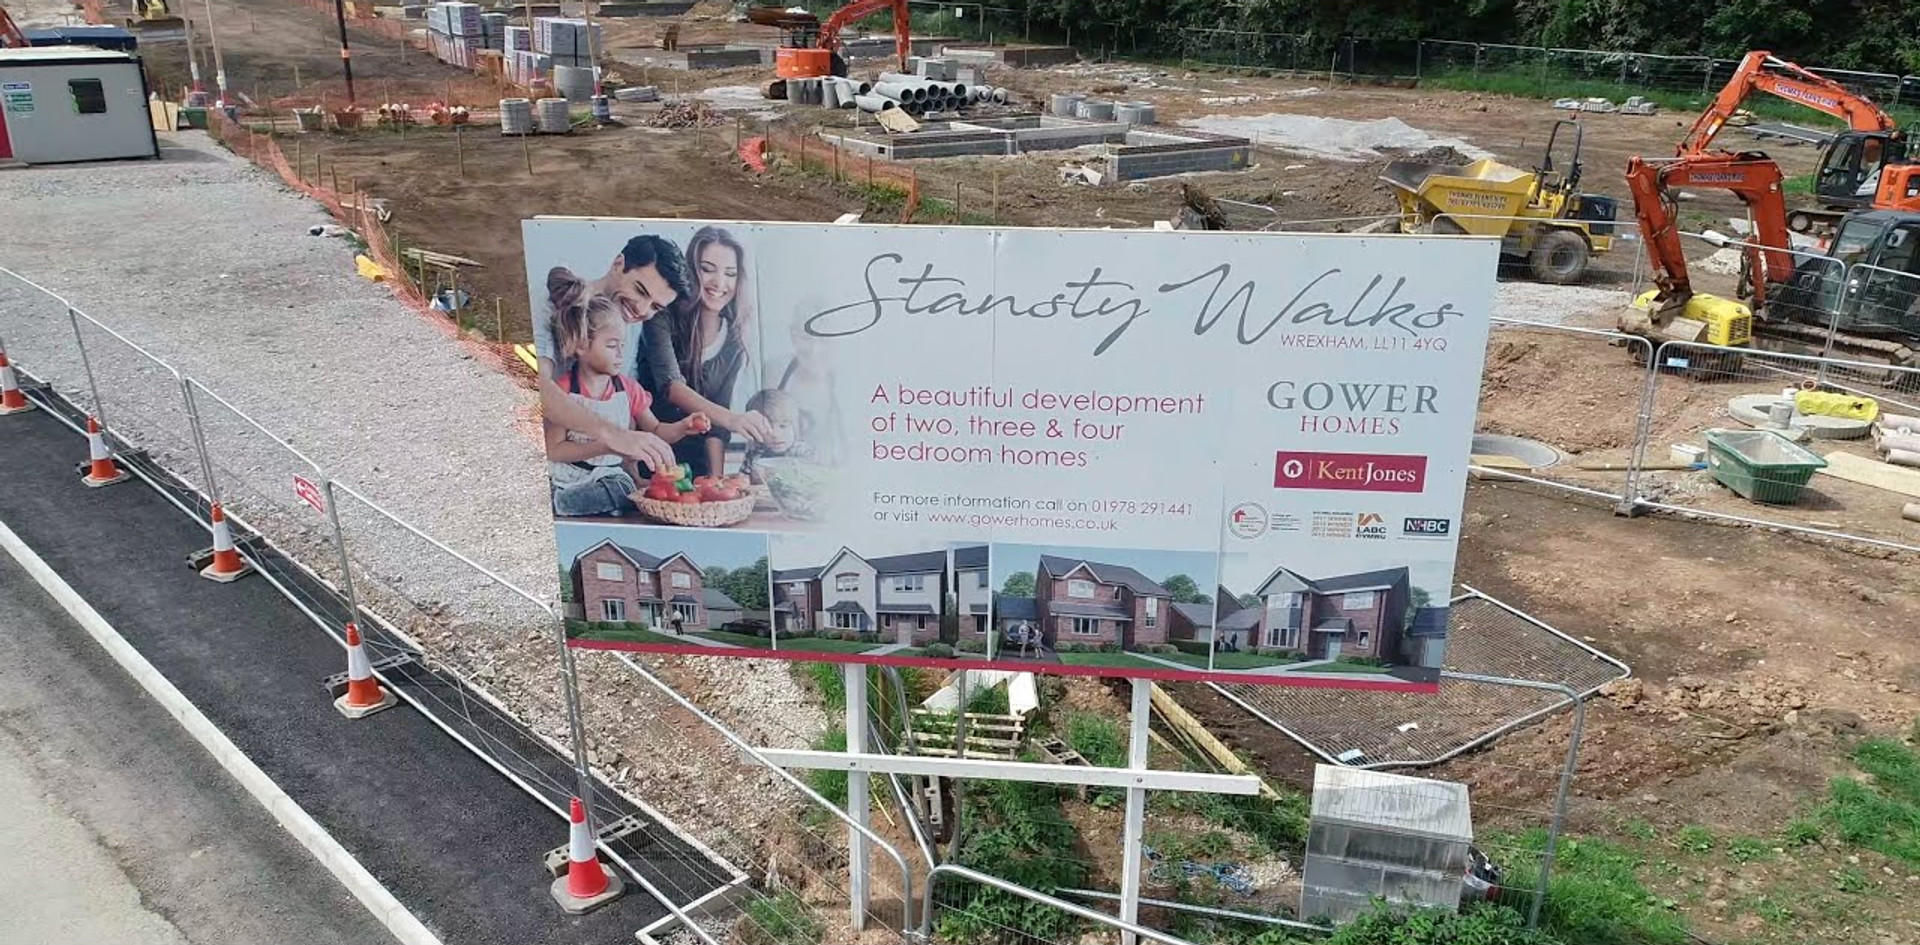 Construction of Stansty Walks 28th May